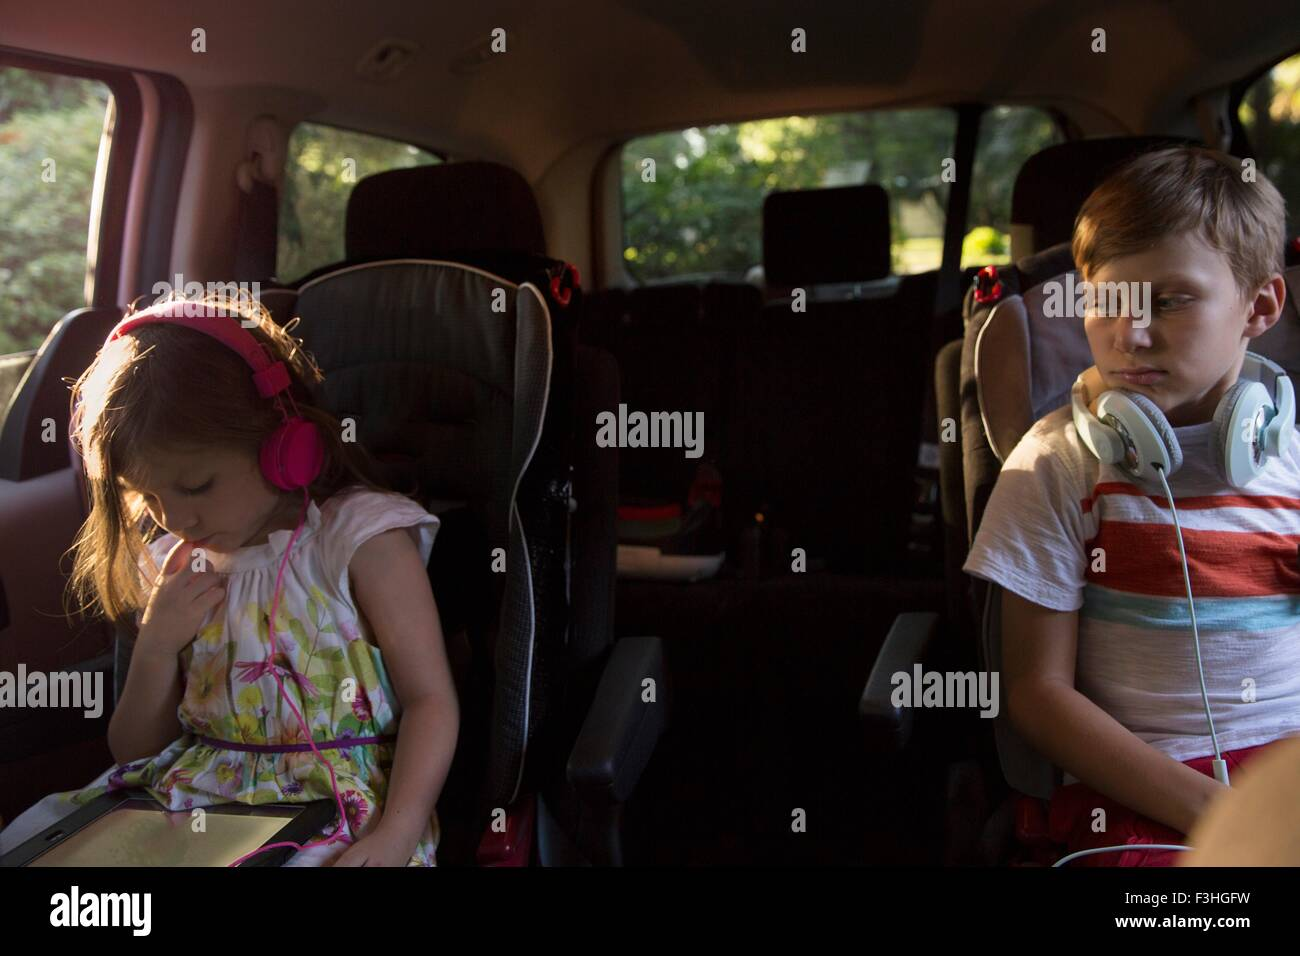 Boy watching younger sister using digital tablet in car back seat - Stock Image